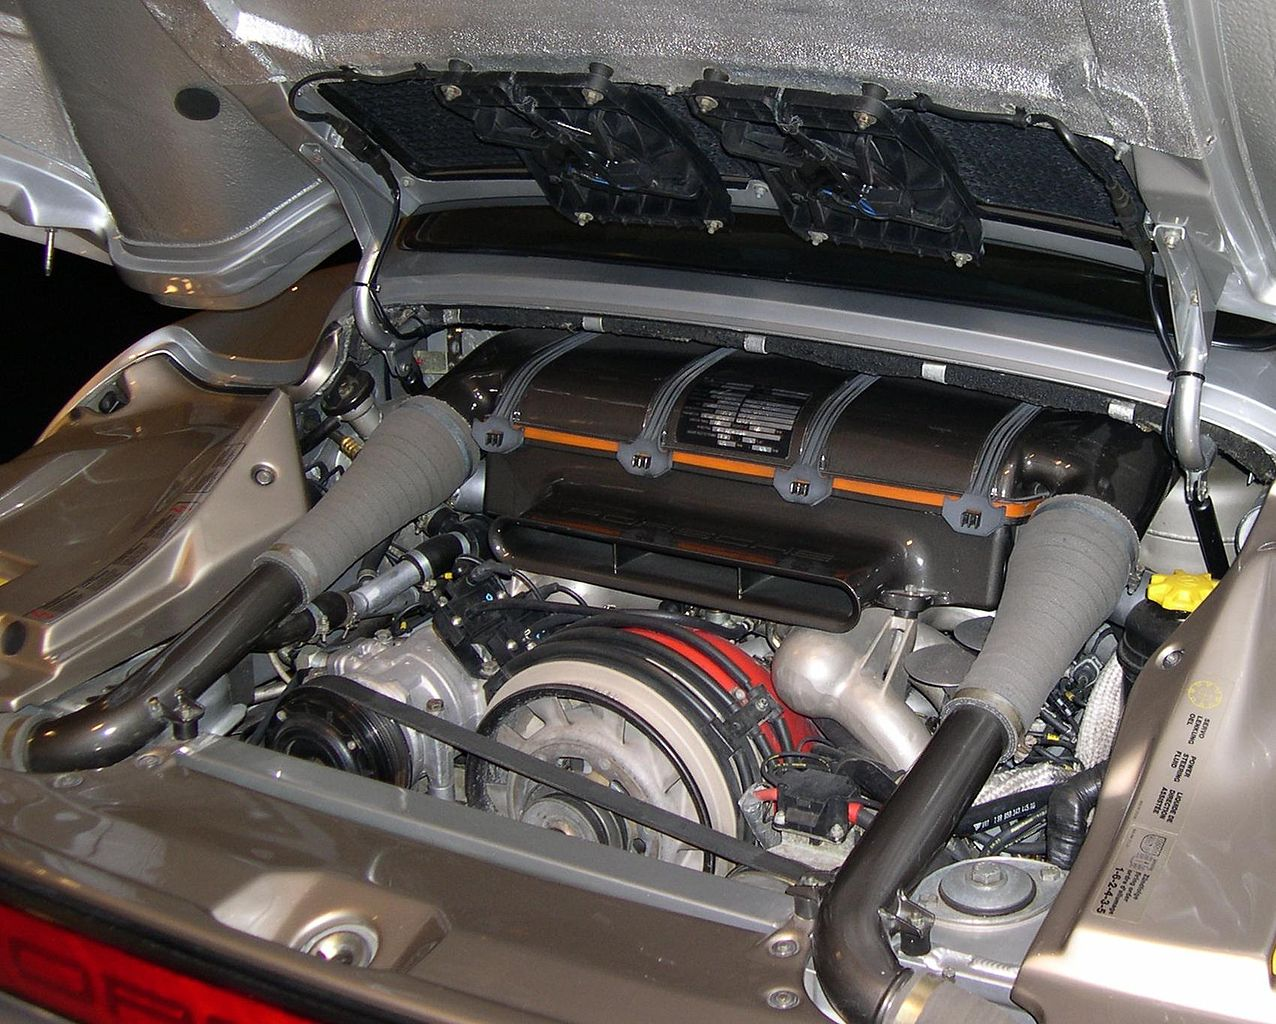 Porsche 959 engine bay revealing the water and air-cooled flat-six engine